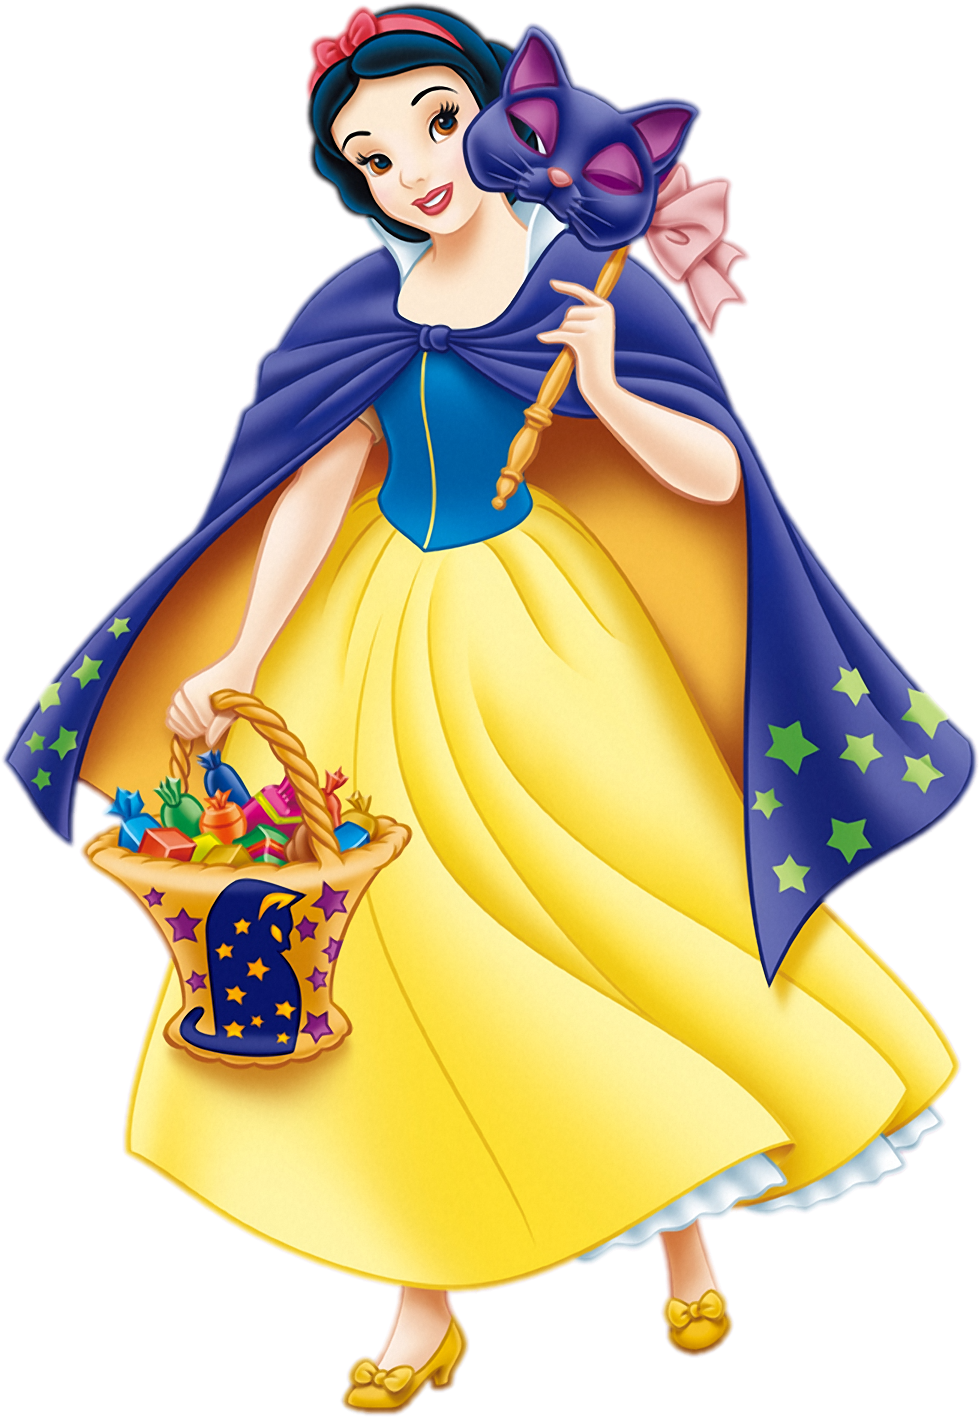 Clipart Das Princesas Disney 20 Free Cliparts